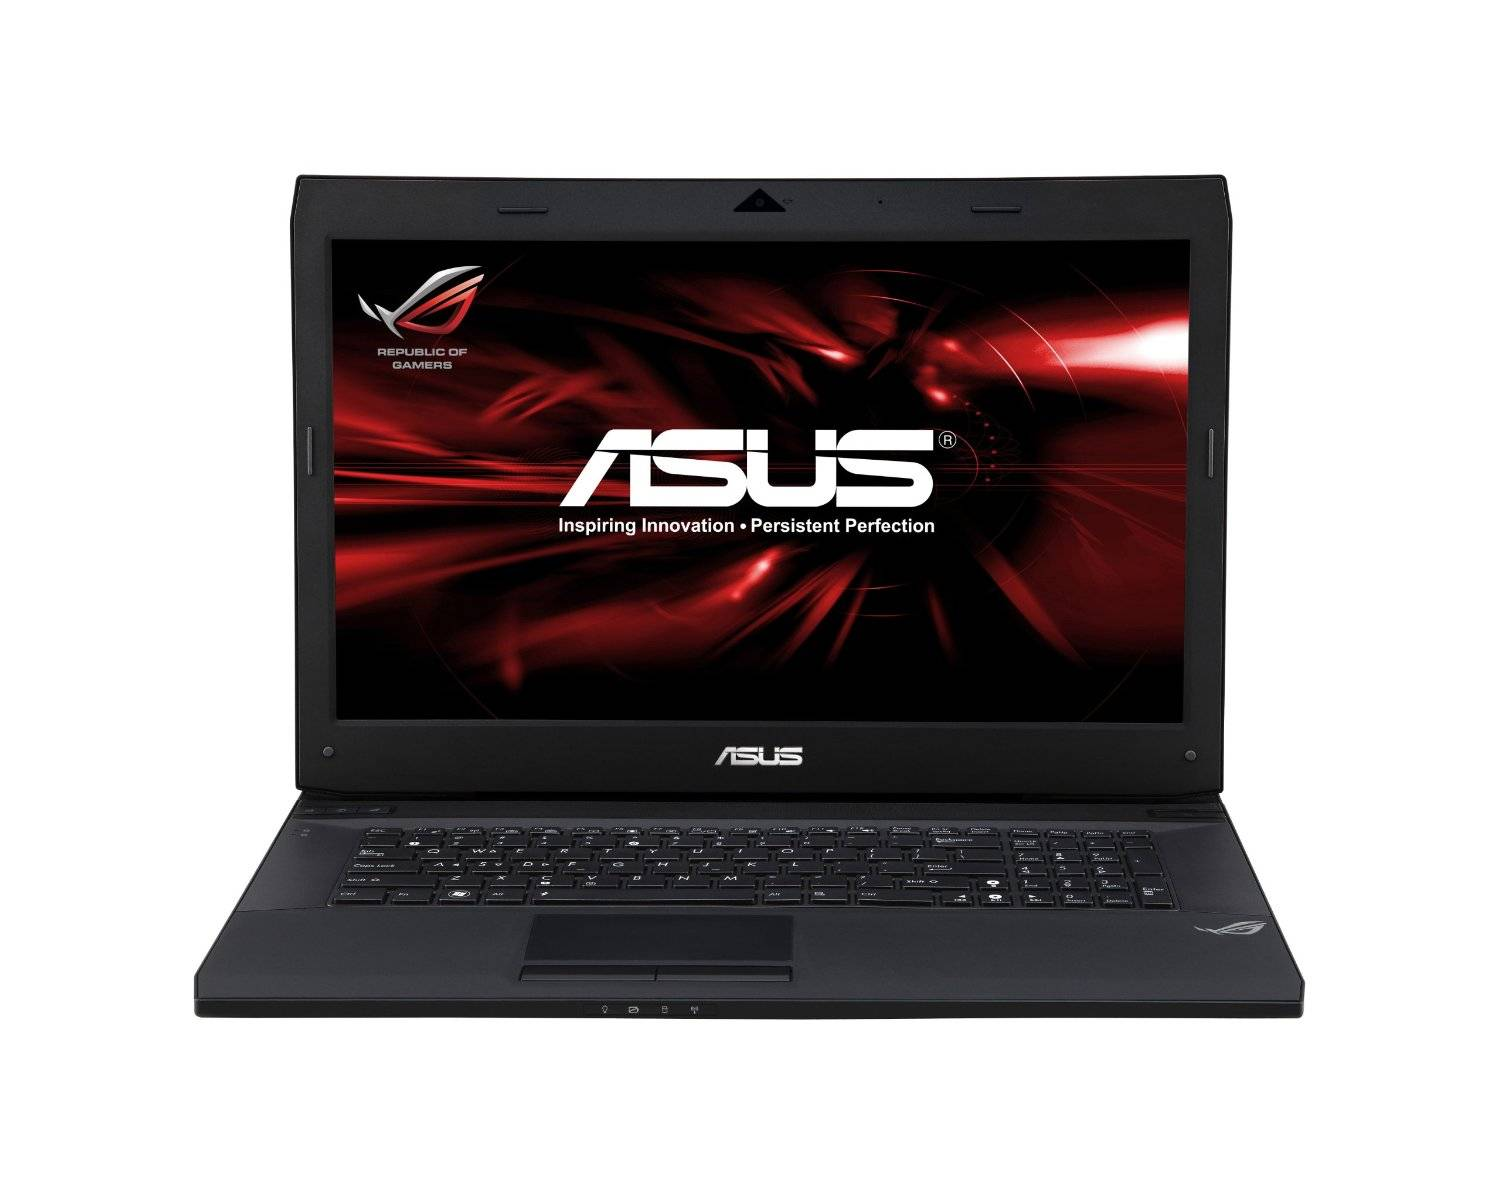 ASUS Republic of Gamers 17.3-Inch Gaming Laptop